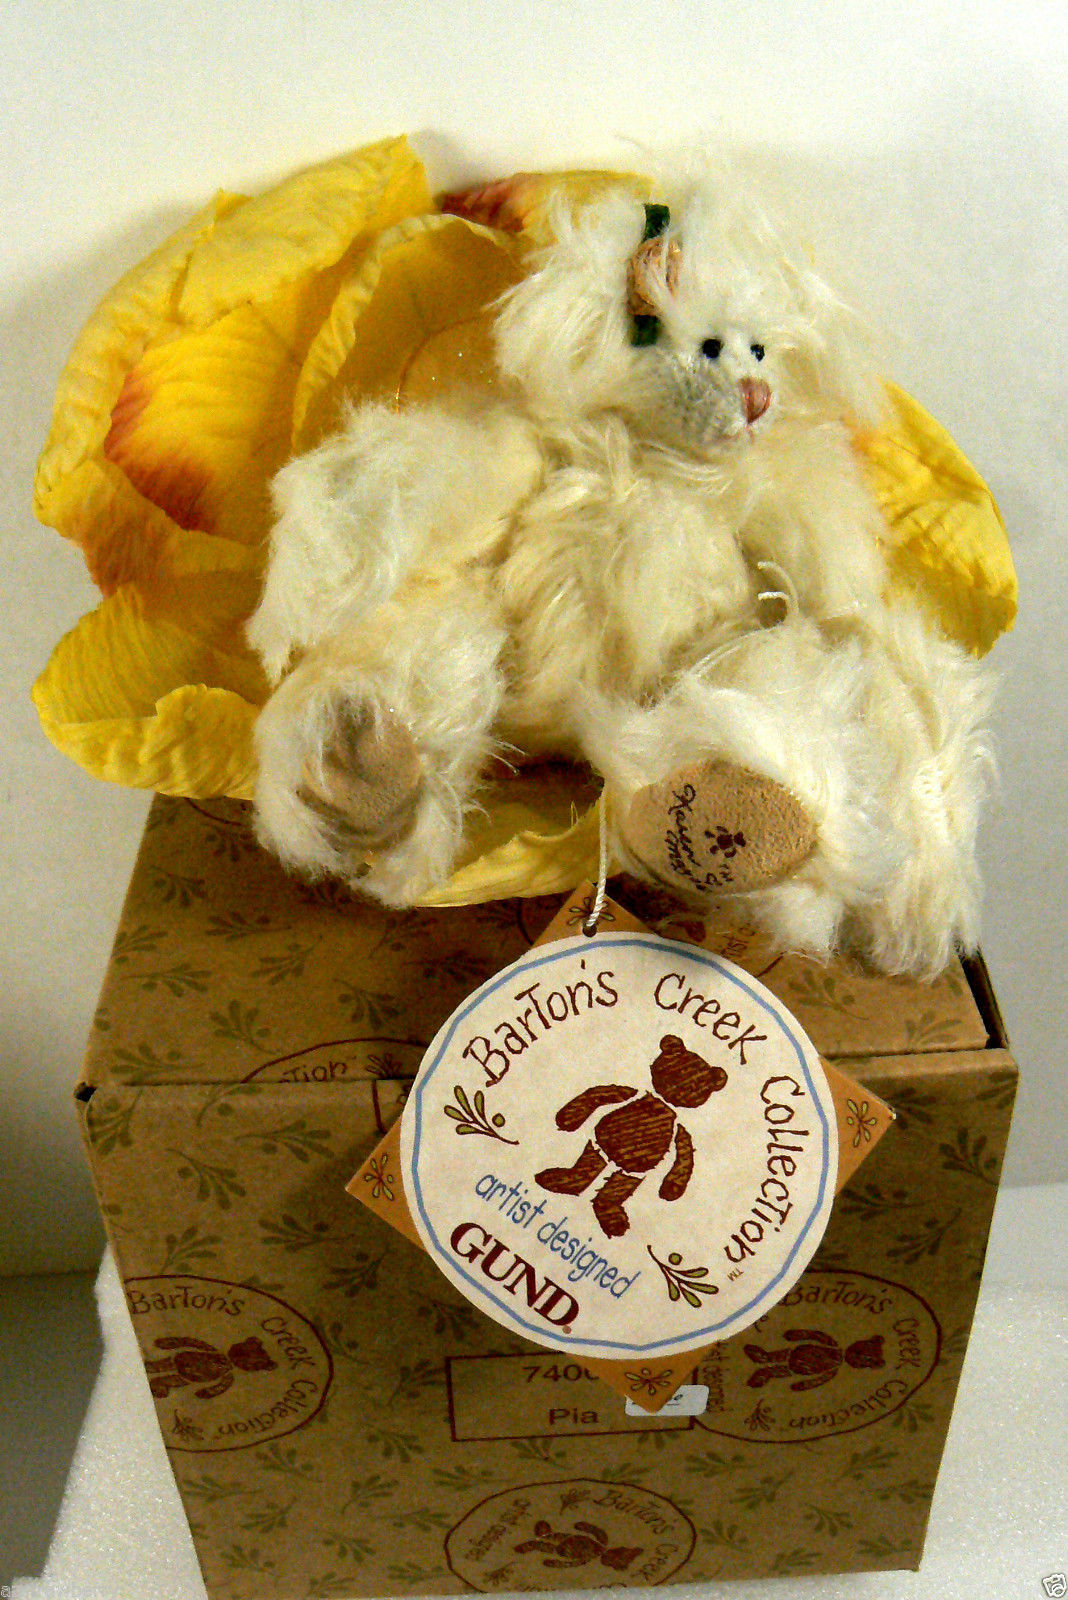 Primary image for Bartons Creek Collection Gund jointed bear Pia with flower Toy Plush 6""